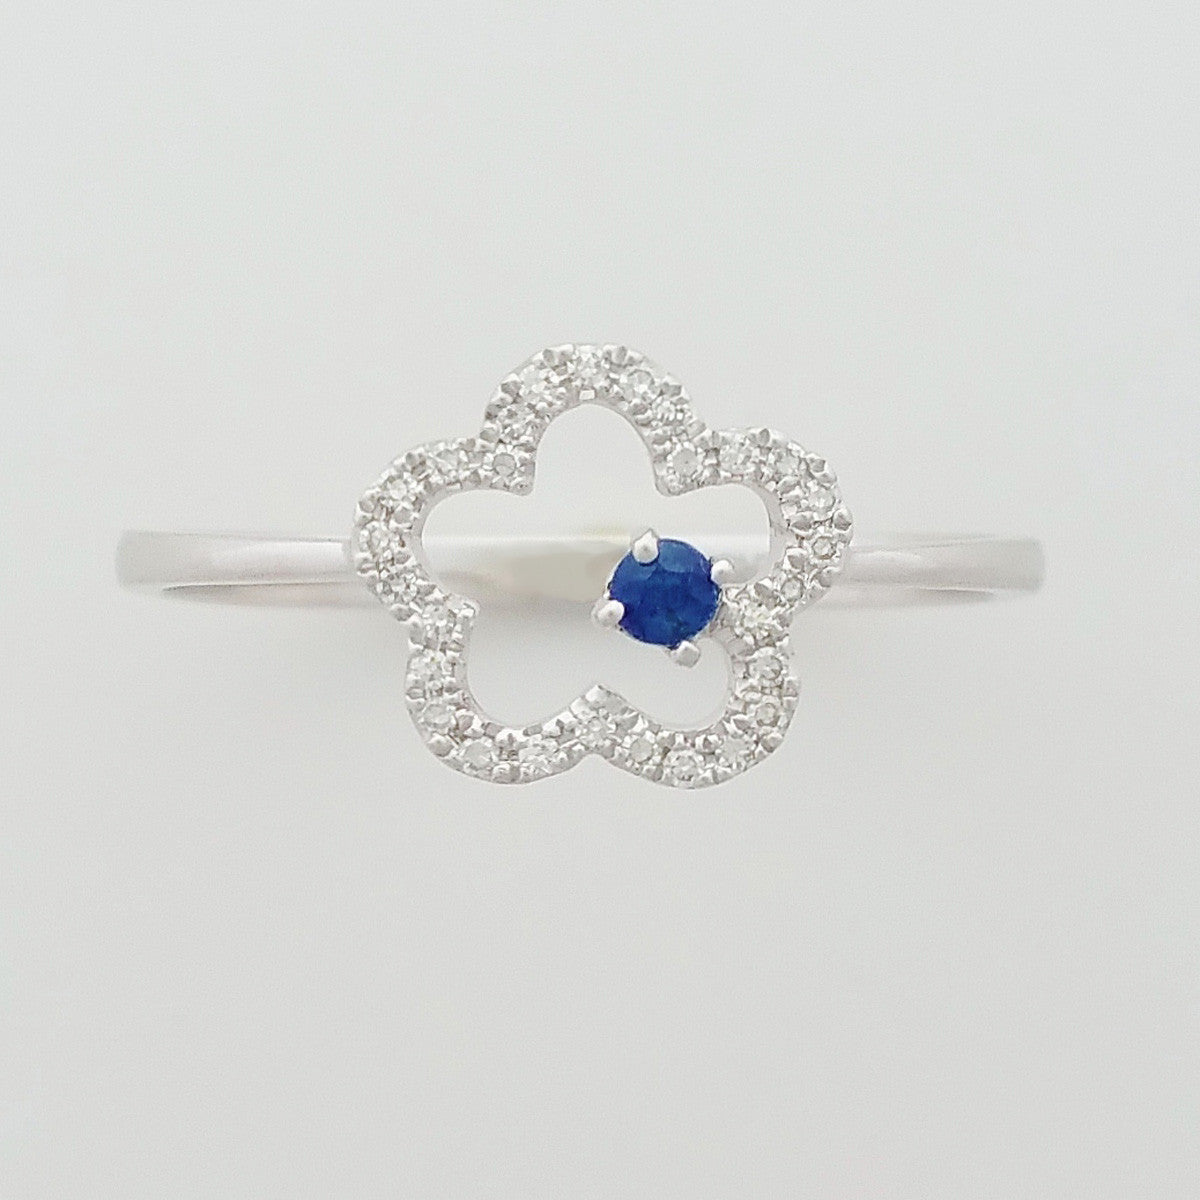 9K SOLID WHITE GOLD 0.05CT NATURAL SAPPHIRE RING WITH 28 DIAMONDS.